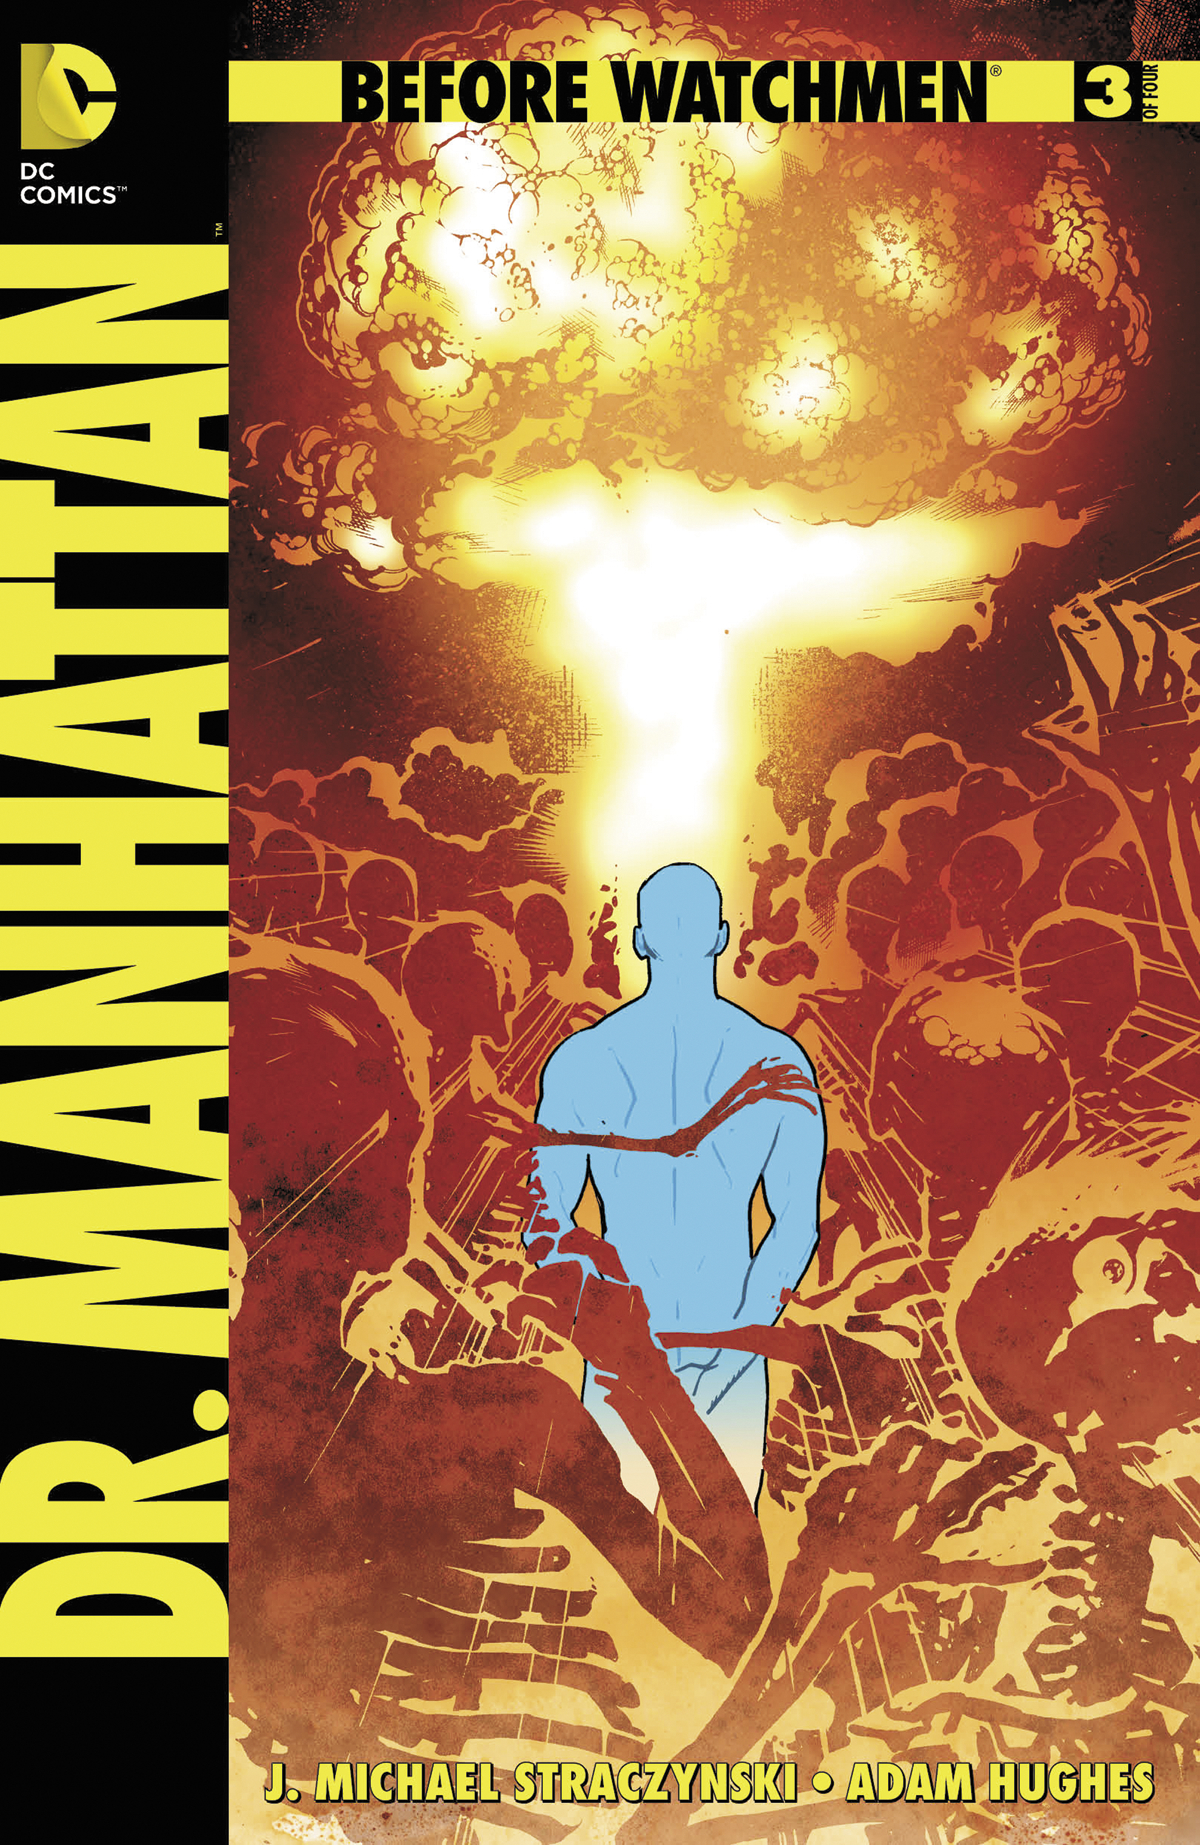 BEFORE WATCHMEN DR MANHATTAN #3 (OF 4) COMBO PACK